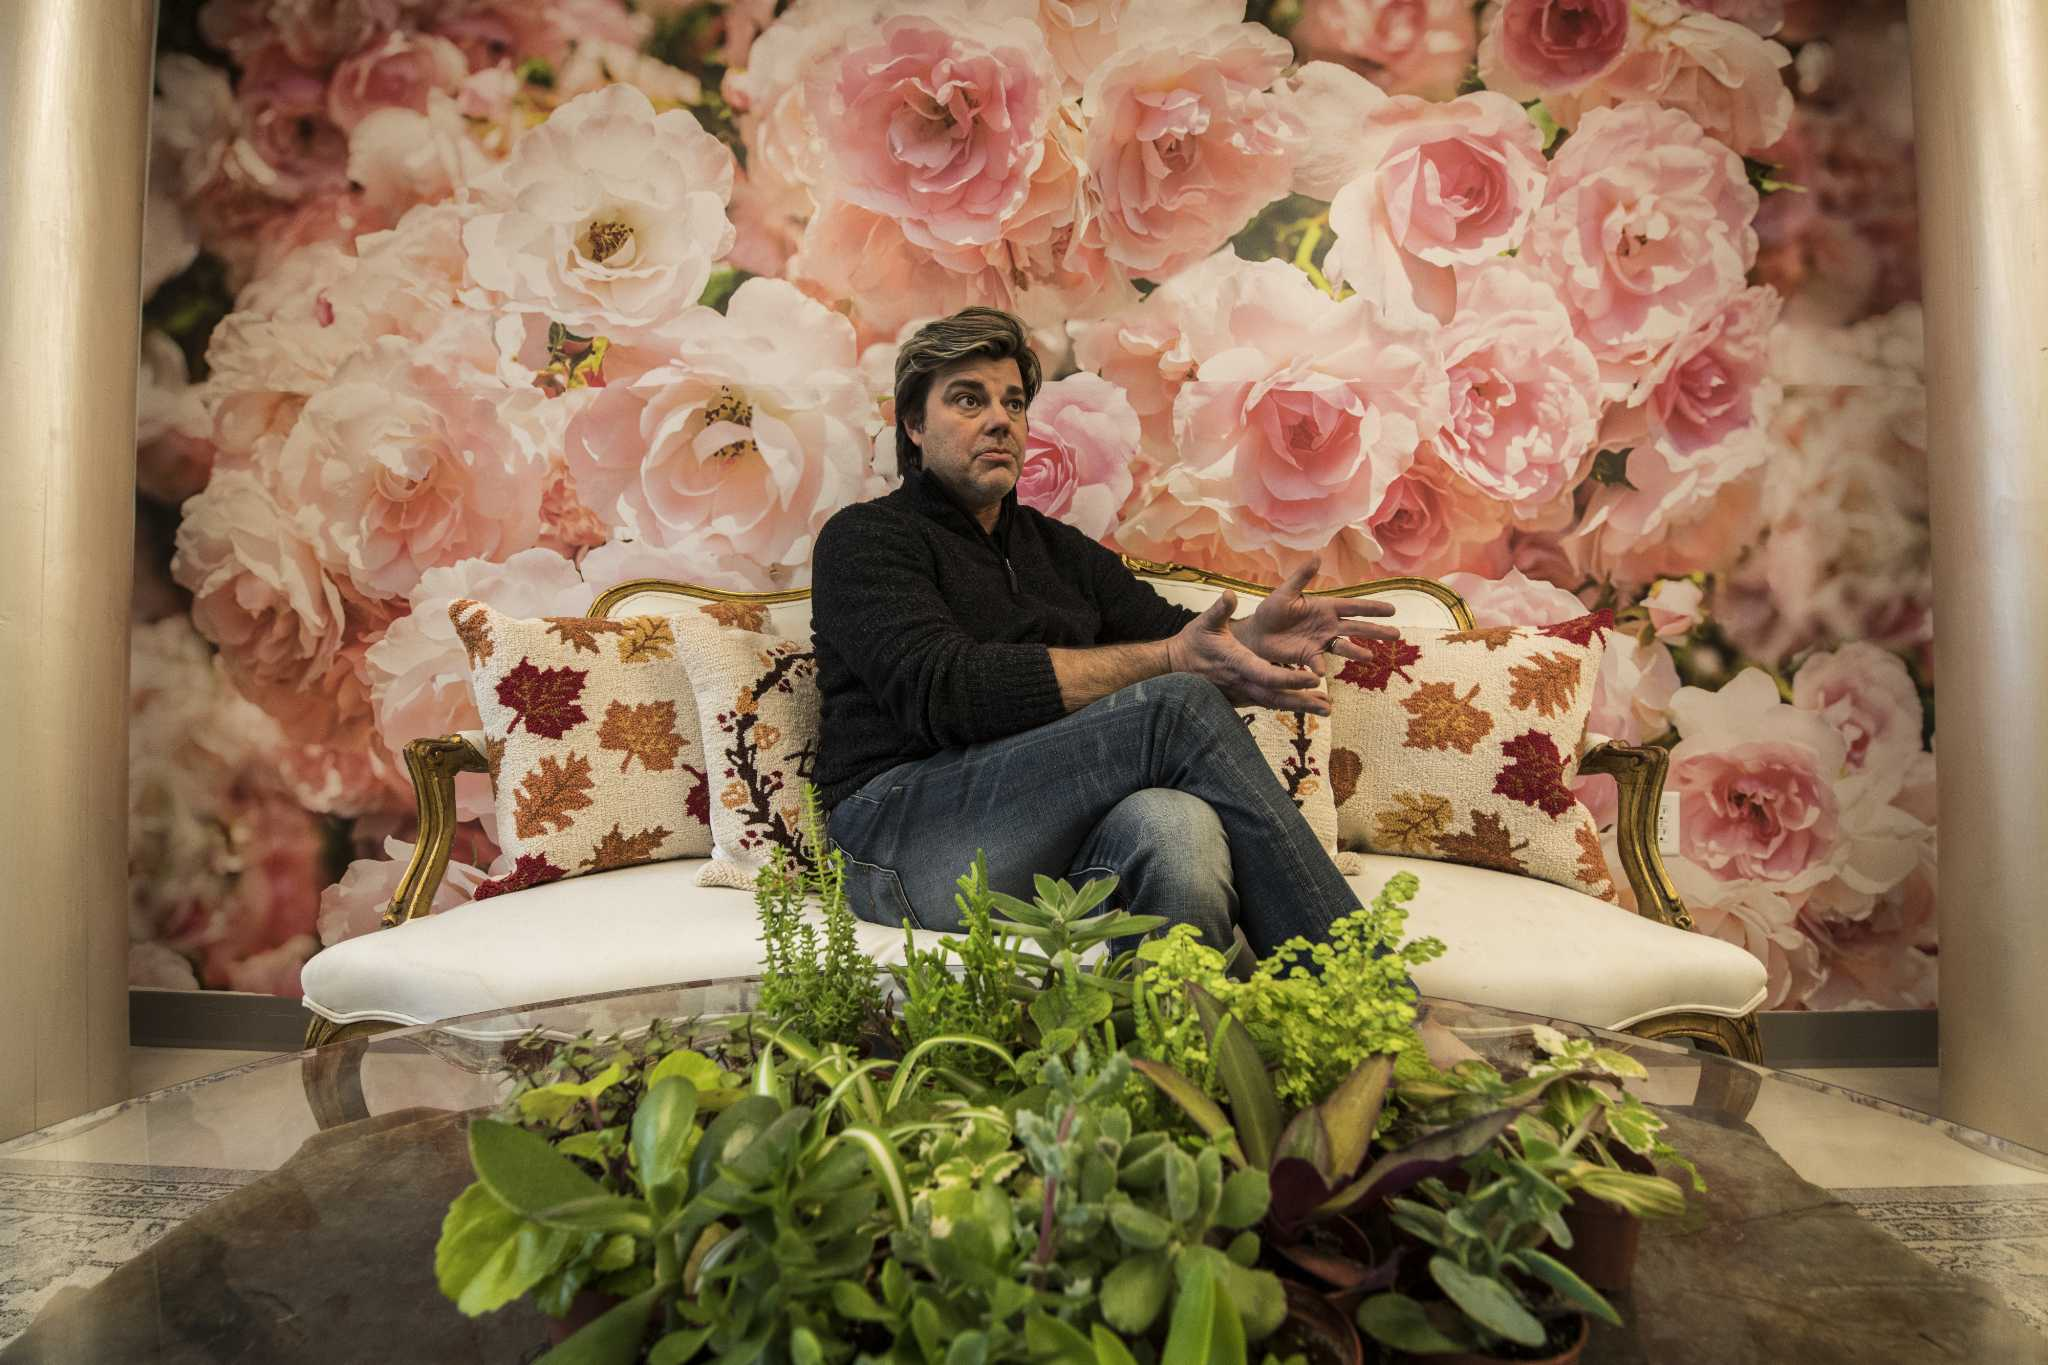 Designer Who Arranged Flowers For Films Opening Saratoga Springs